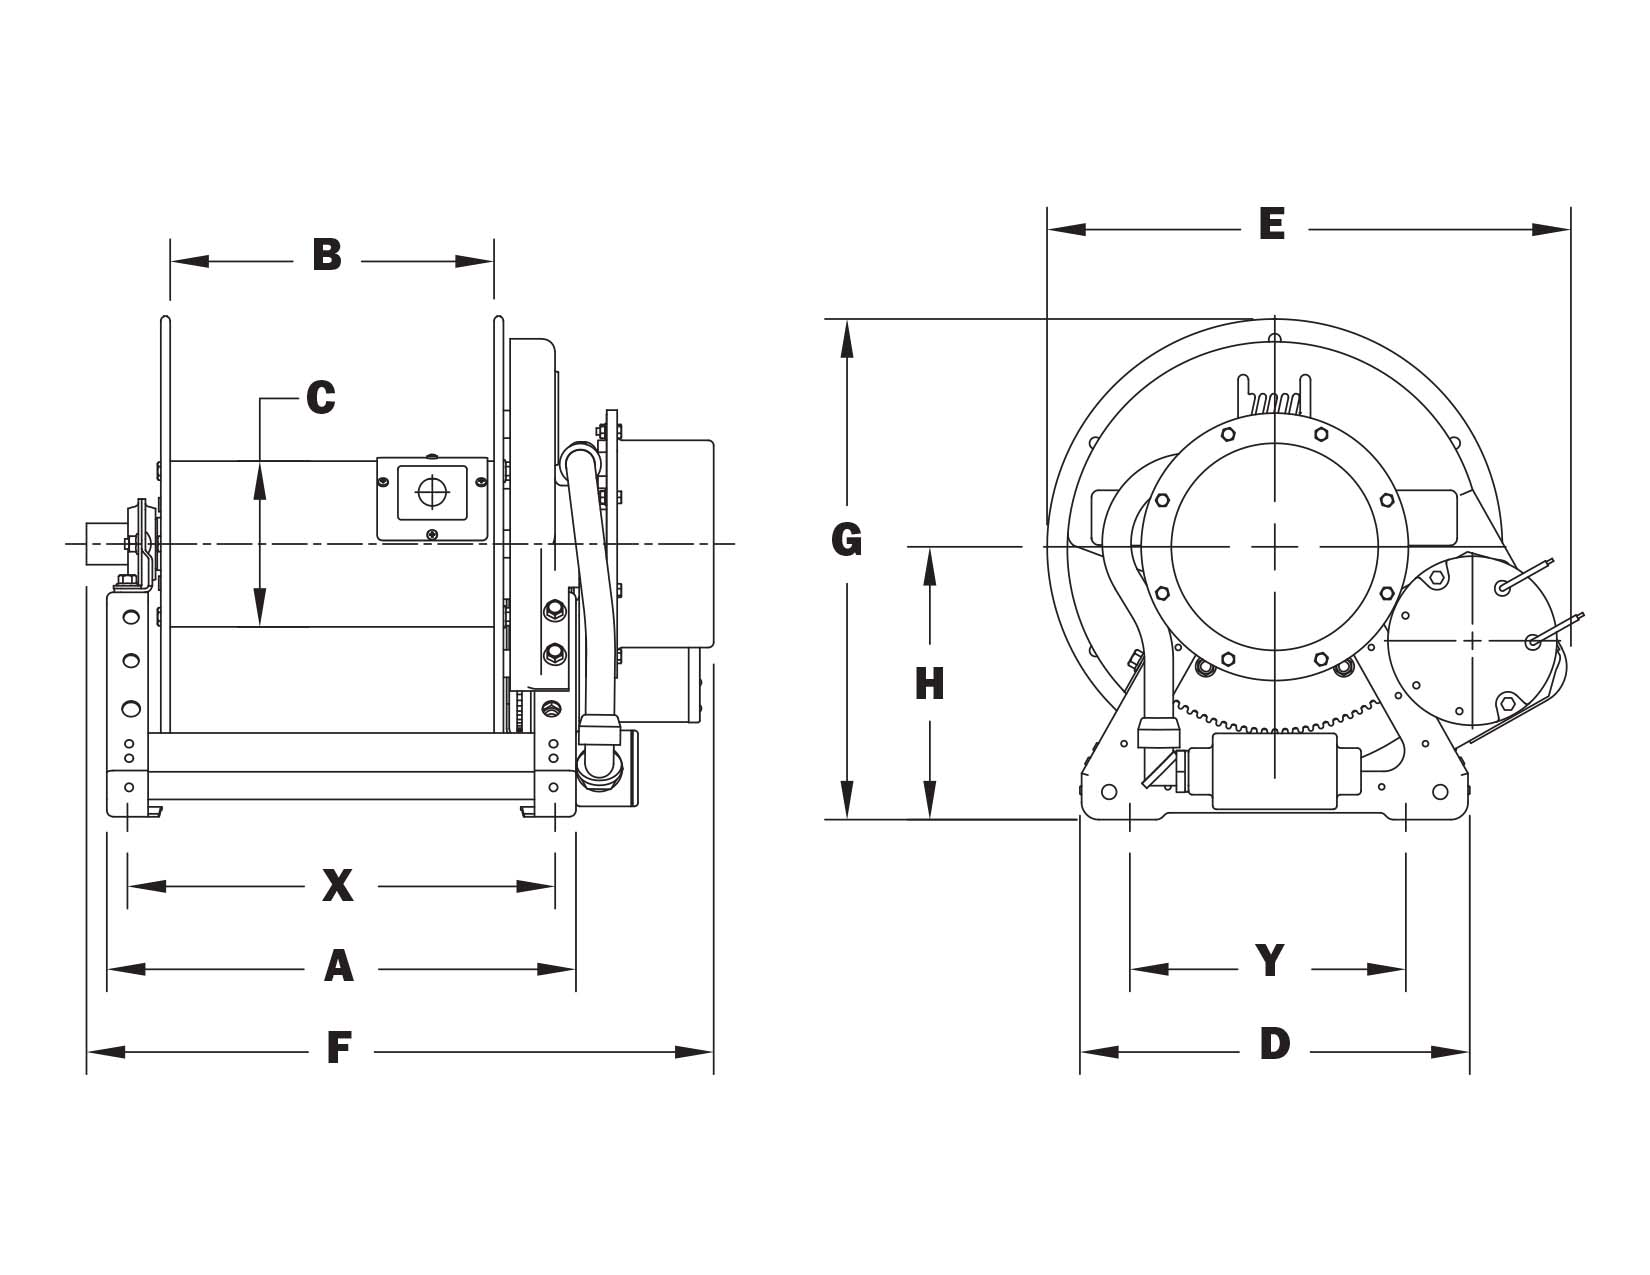 CR1600 Schematic_1492436847 cr1600 series hannay reels official site hannay reel wiring diagram at panicattacktreatment.co